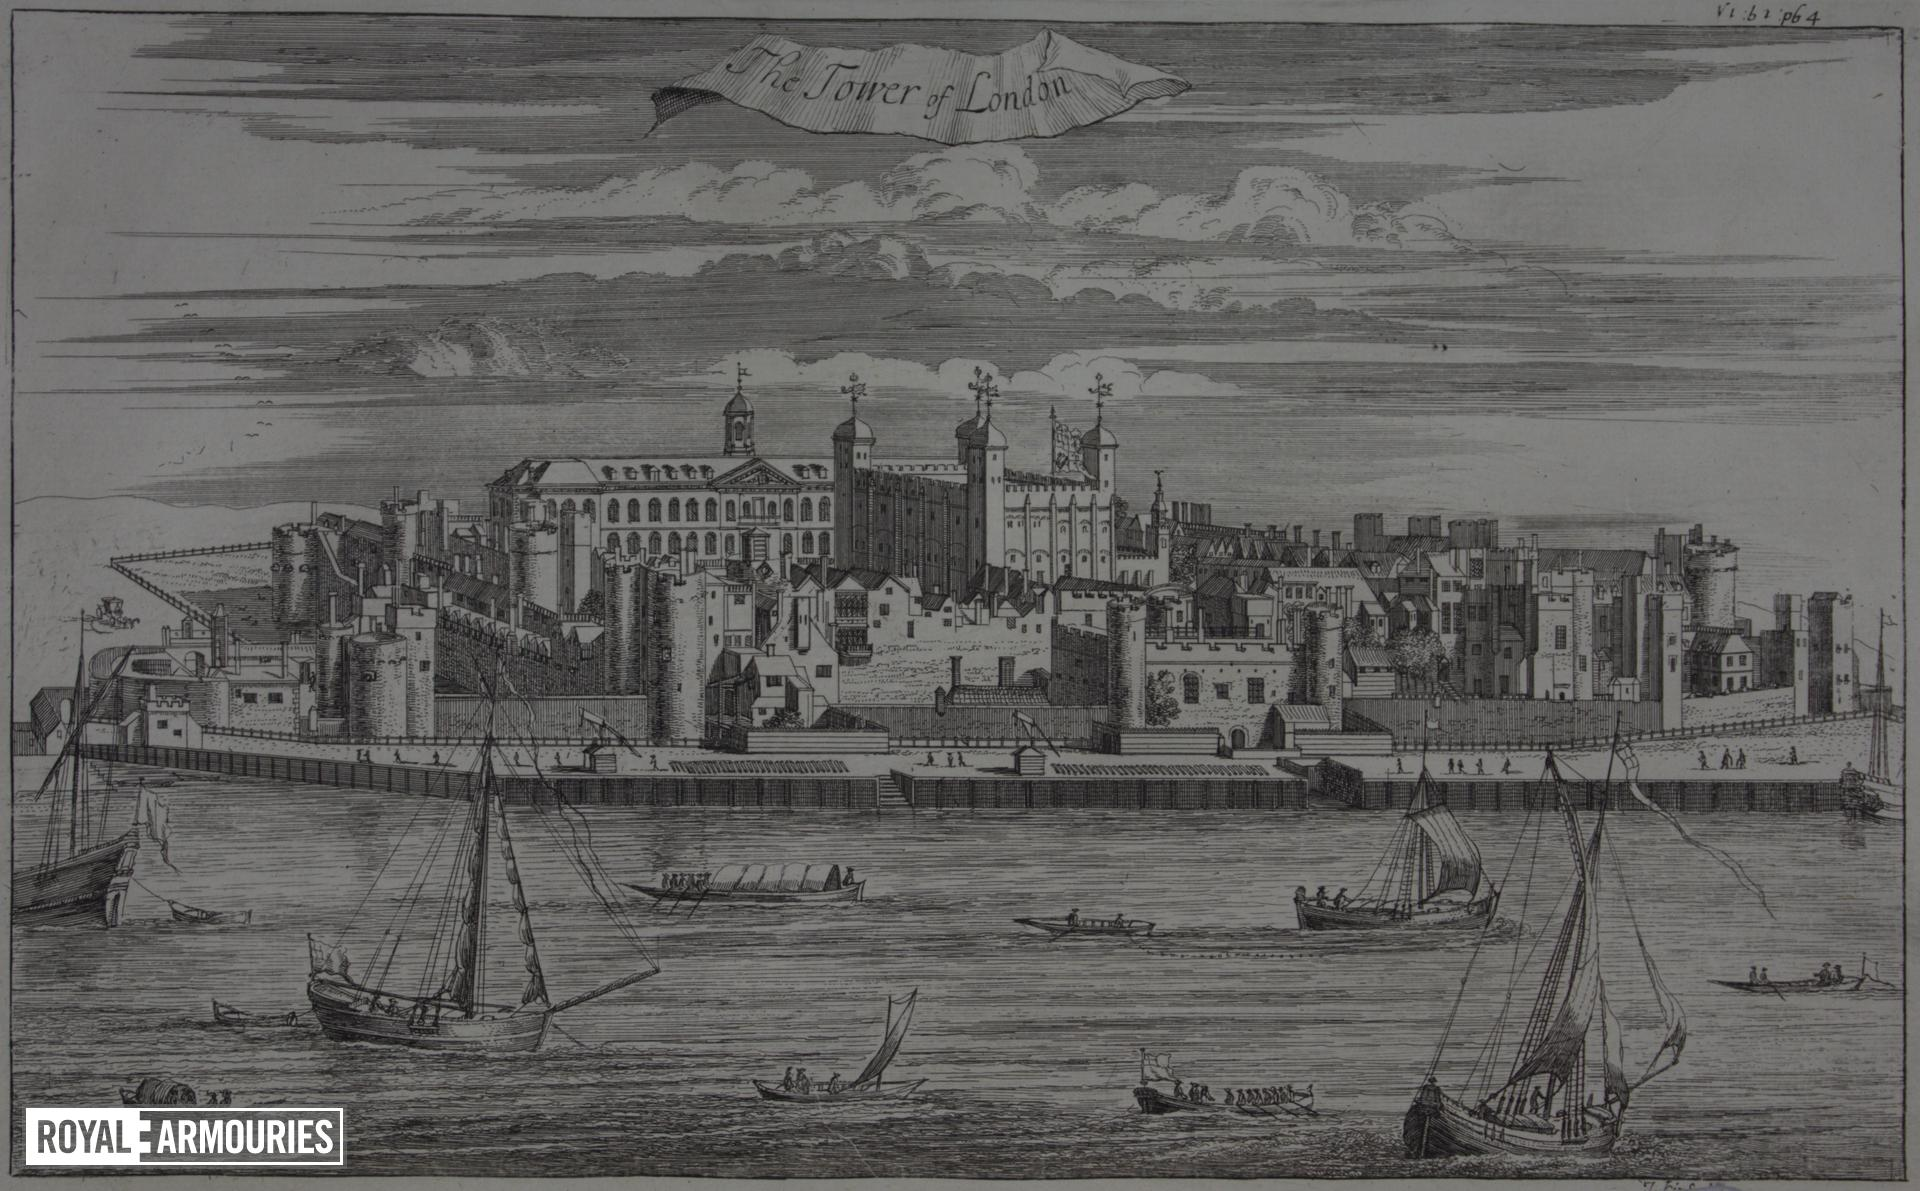 Print 'The Tower of London', about 1720